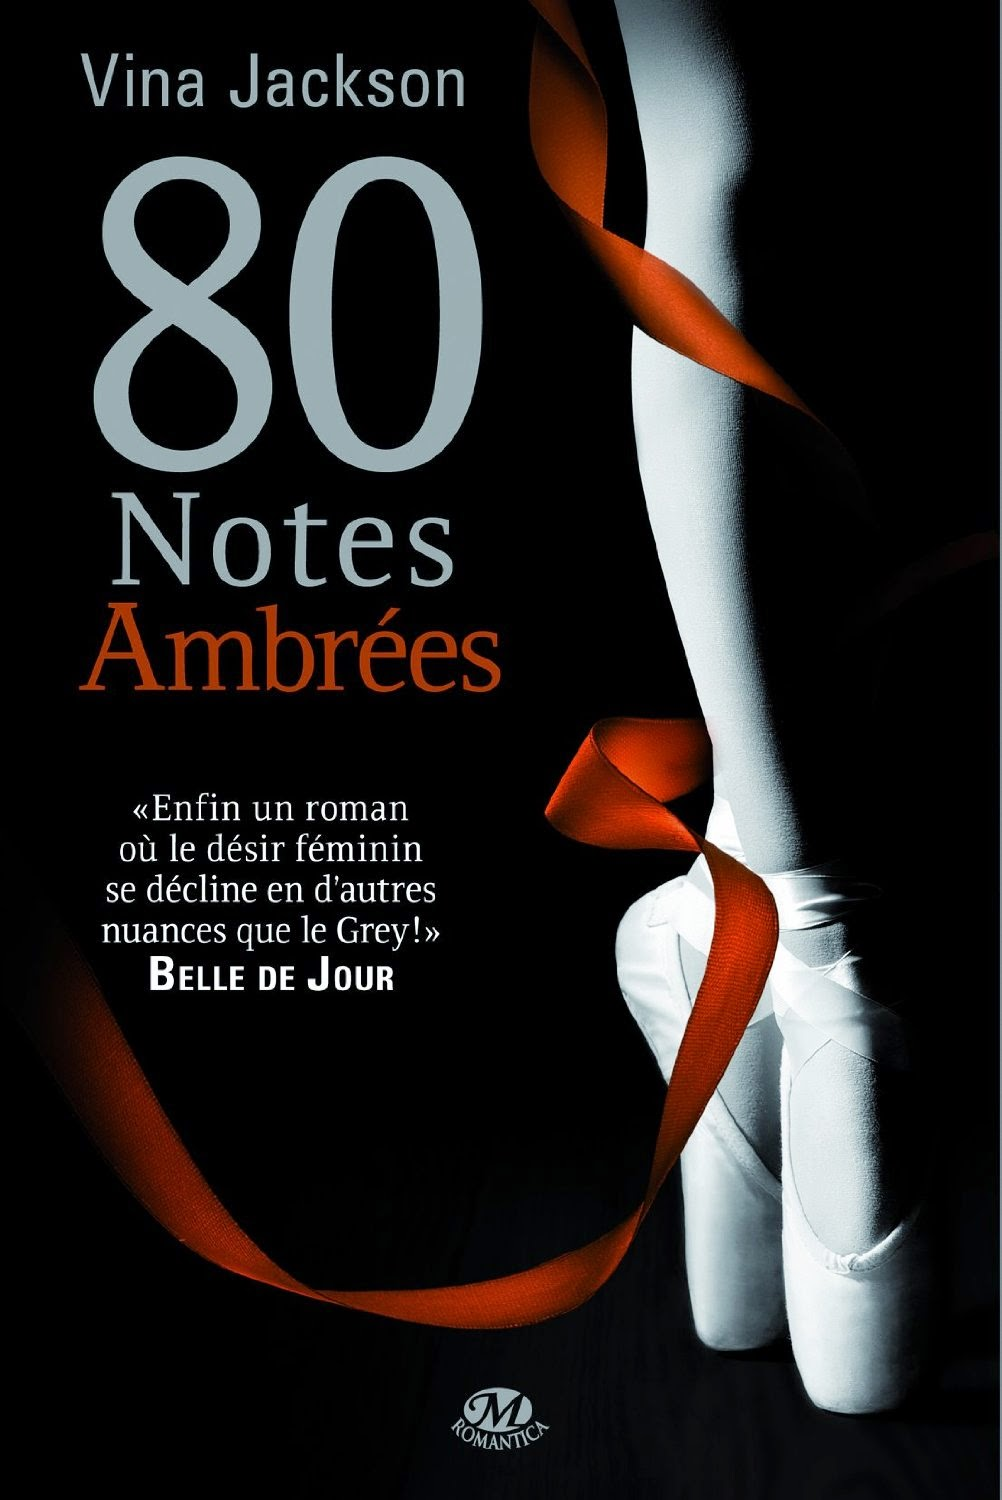 http://unbrindelecture.blogspot.fr/2014/05/eighty-days-tome-4-80-notes-ambrees-de.html